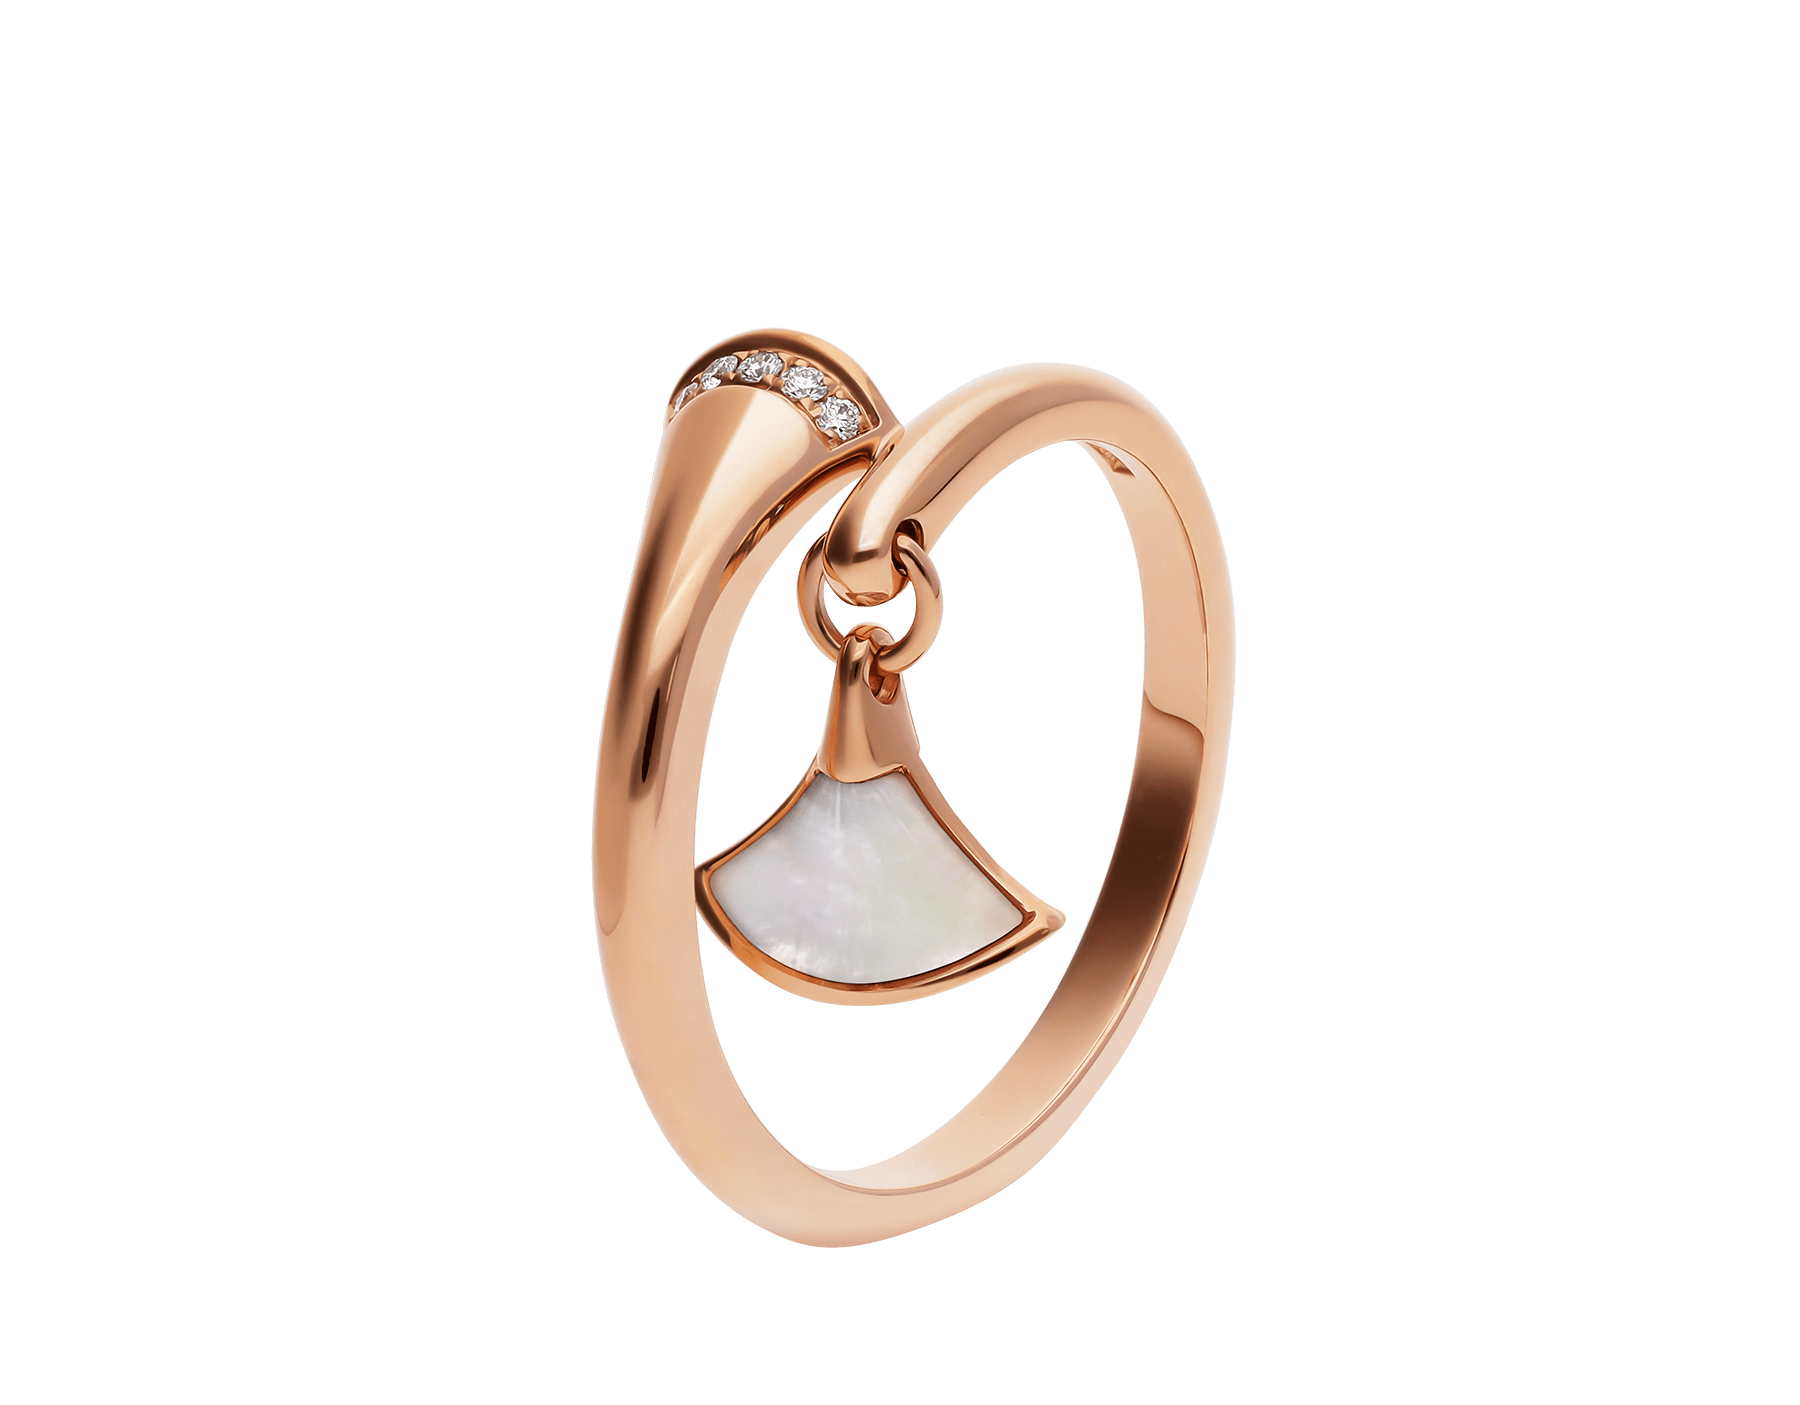 DIVAS' DREAM ring in 18 kt rose gold set with pavé diamonds and charm set with mother-of-pearl. AN857333 image 1